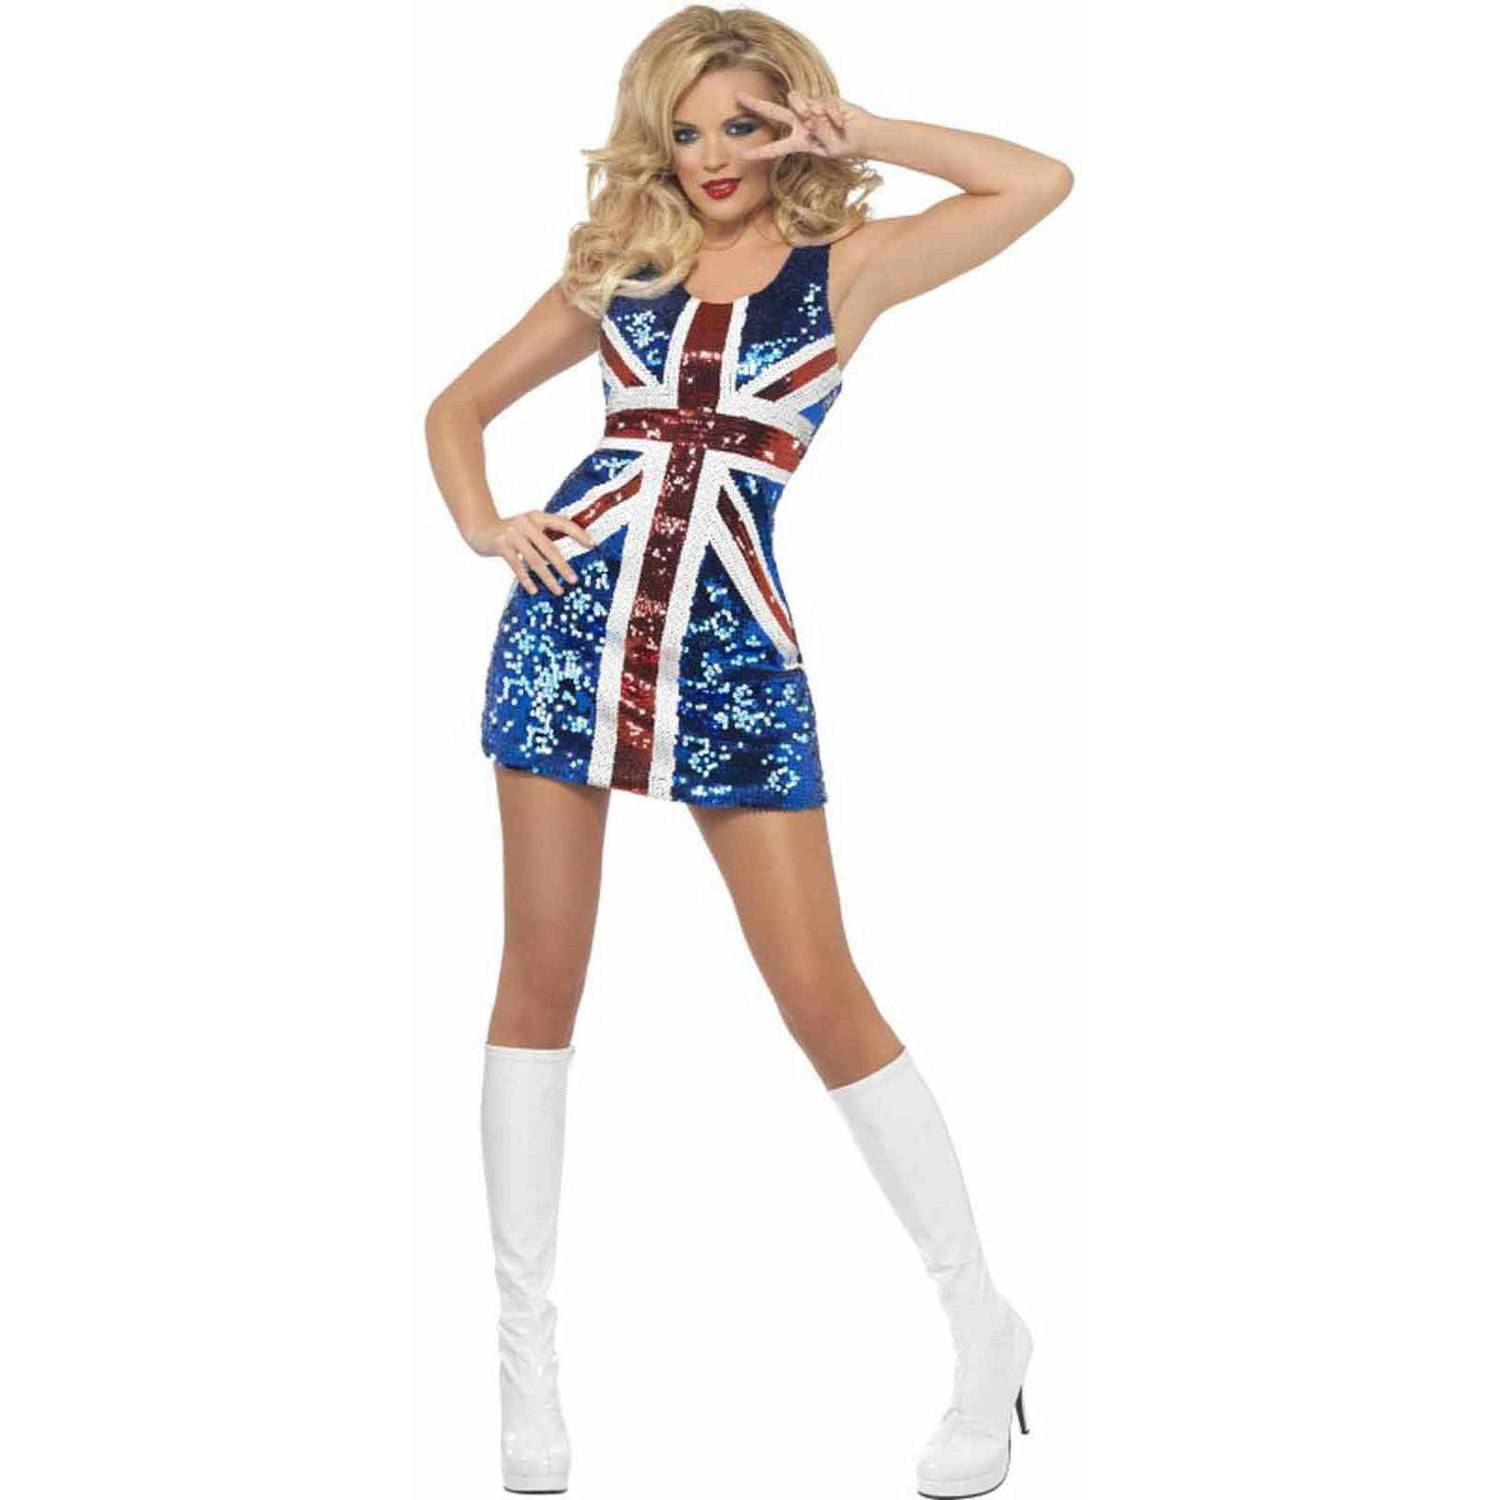 All That Glitters Rule Britannia Union Jack Dress Women's Adult Halloween Costume